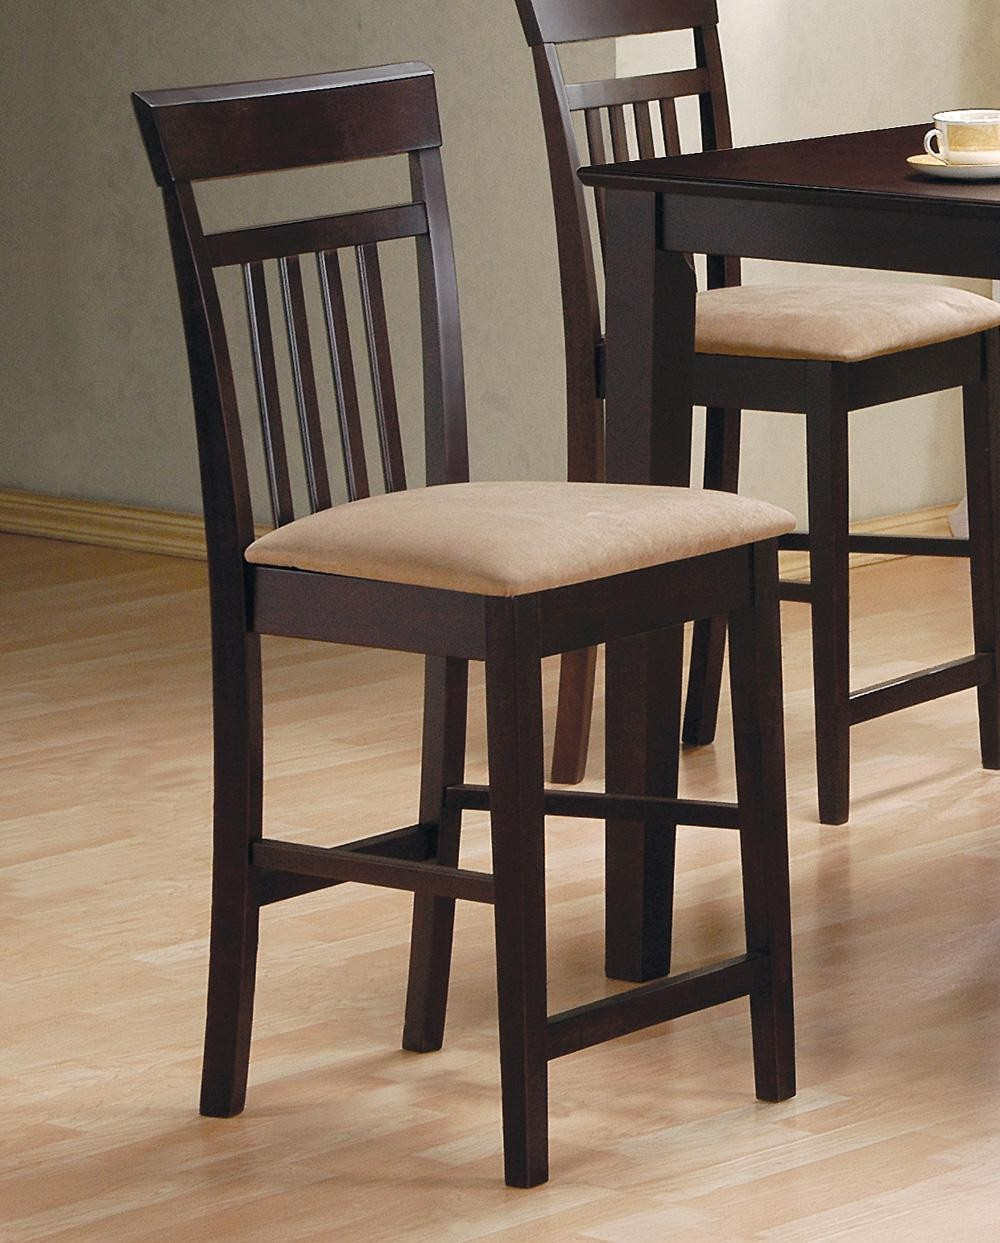 Dining Room Sets 5 Piece: Cappuccino 5 Piece Counter Height Dining Room Set 150041